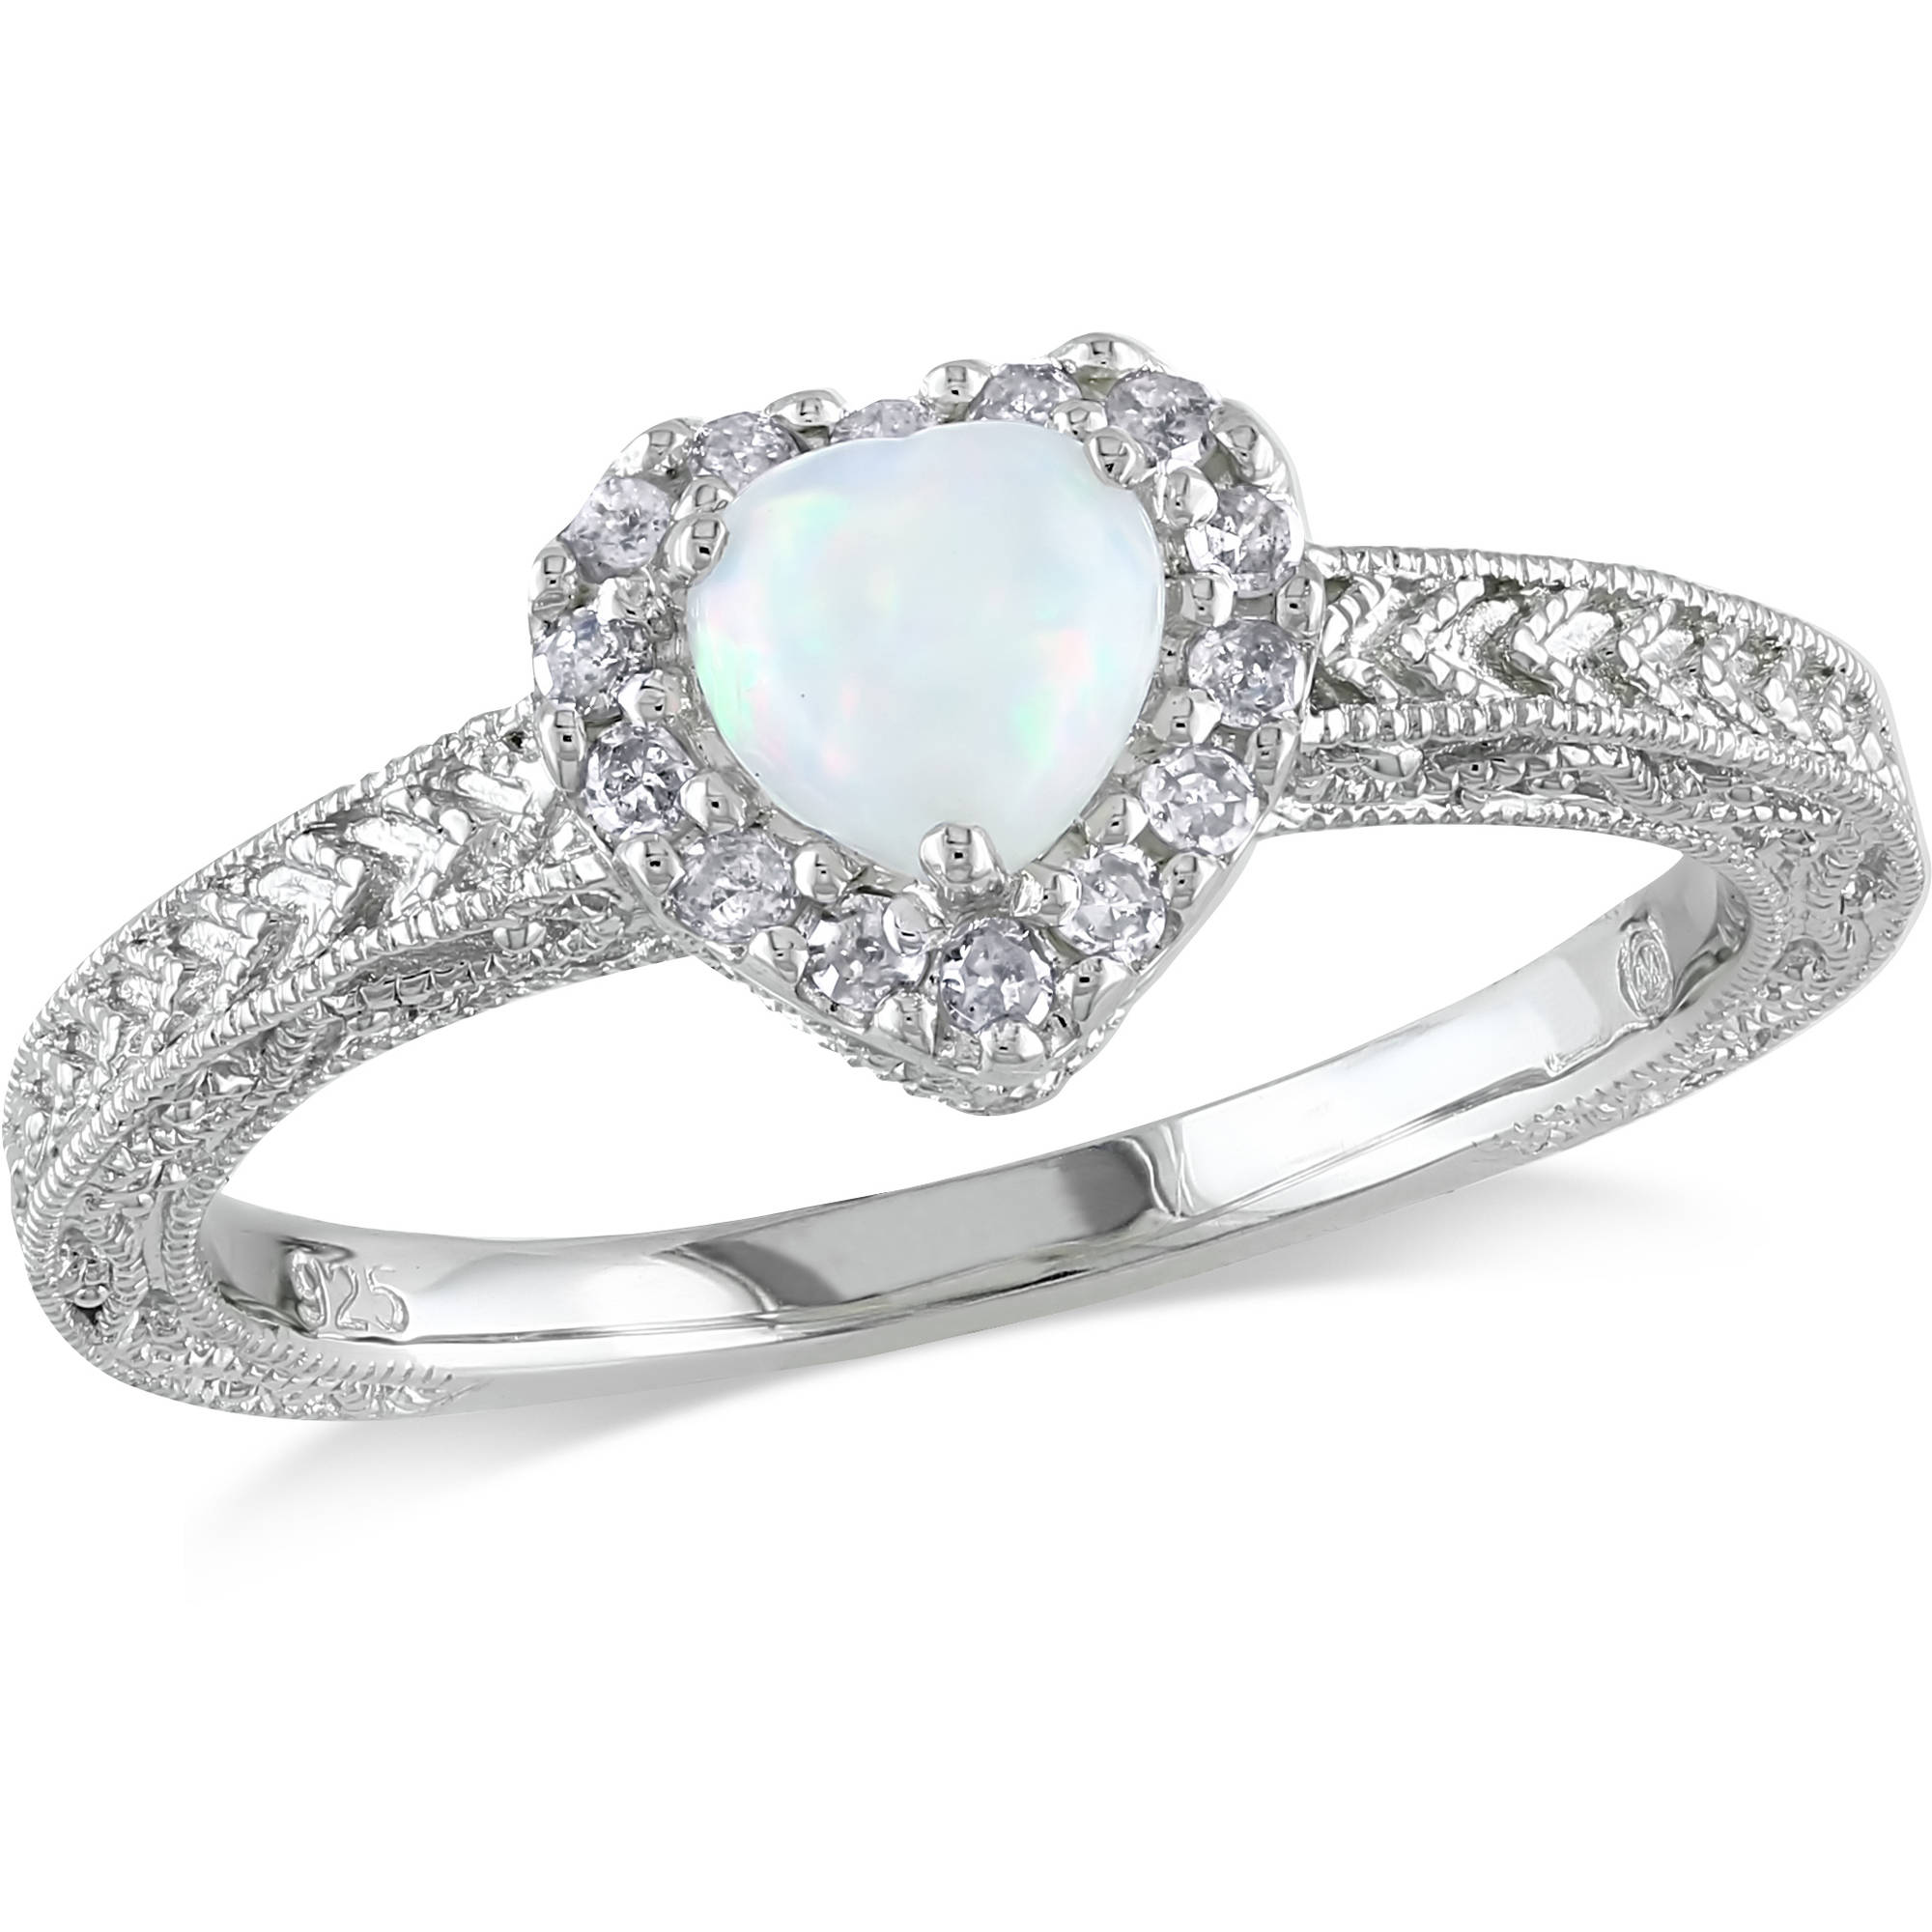 Tangelo 1 3 Carat T.G.W. Opal and 1 7 Carat T.W. Diamond Fashion Ring in Sterling Silver by Generic